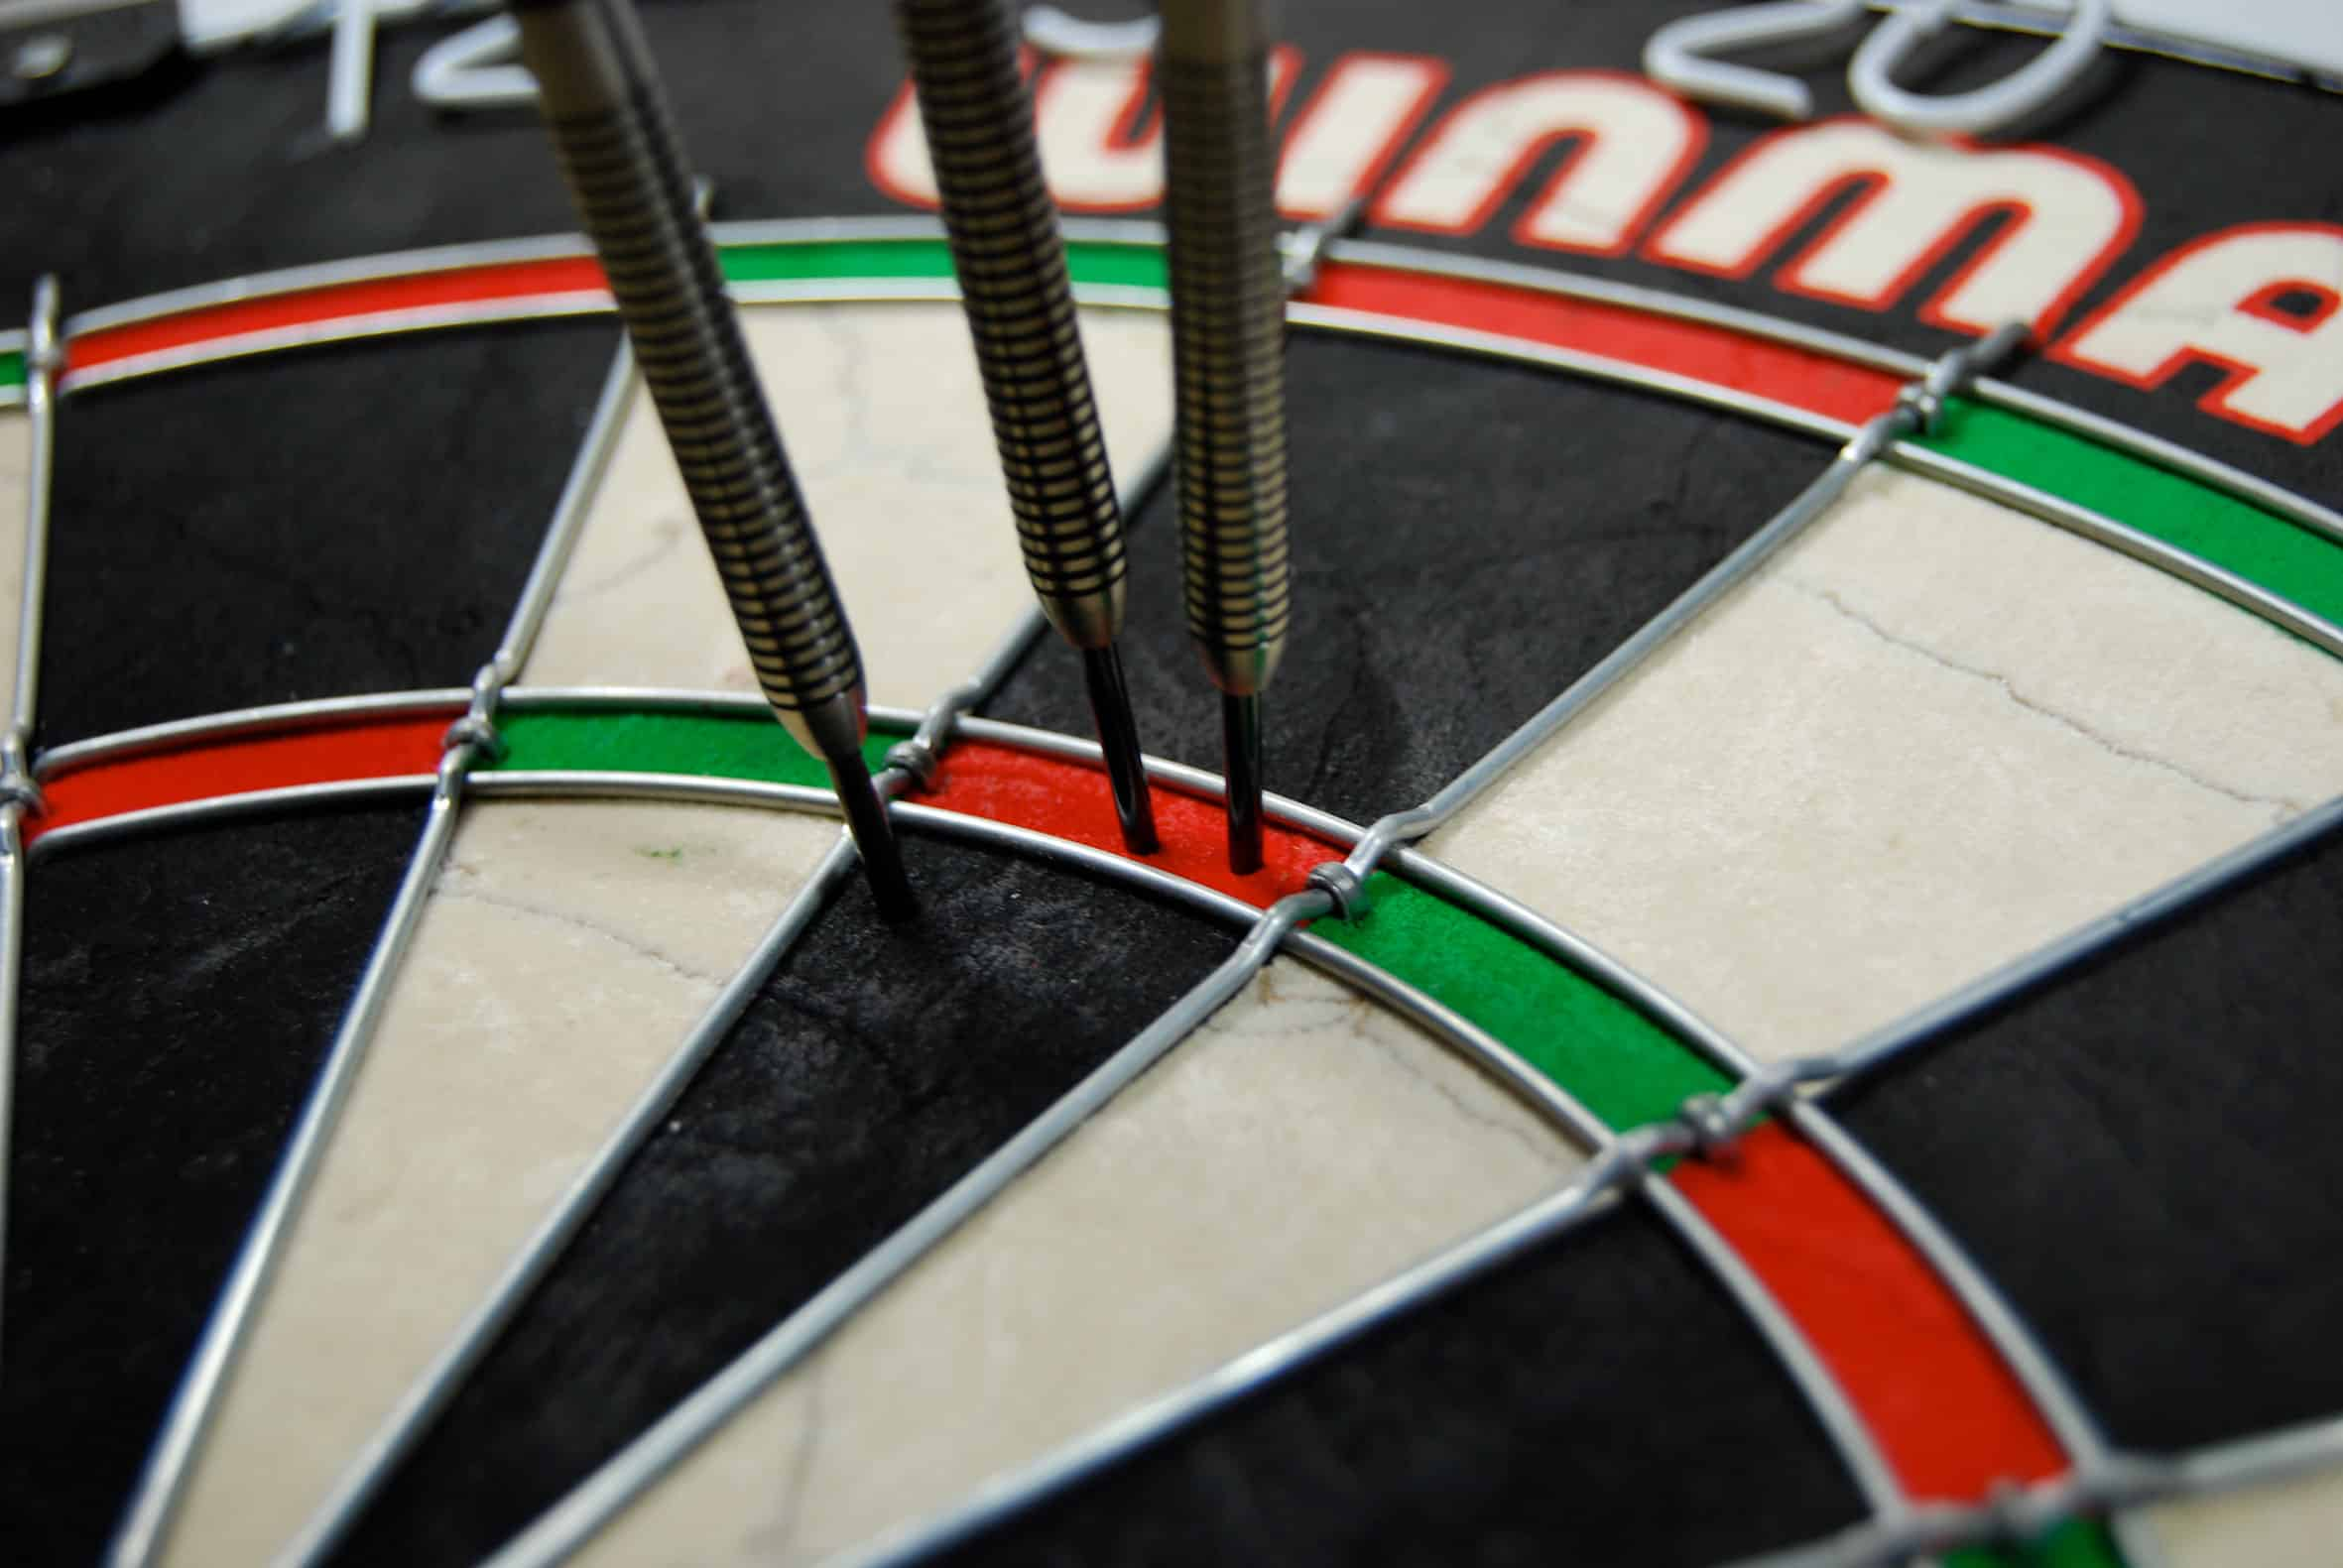 Voor In De Agenda: Let's Play Darts!